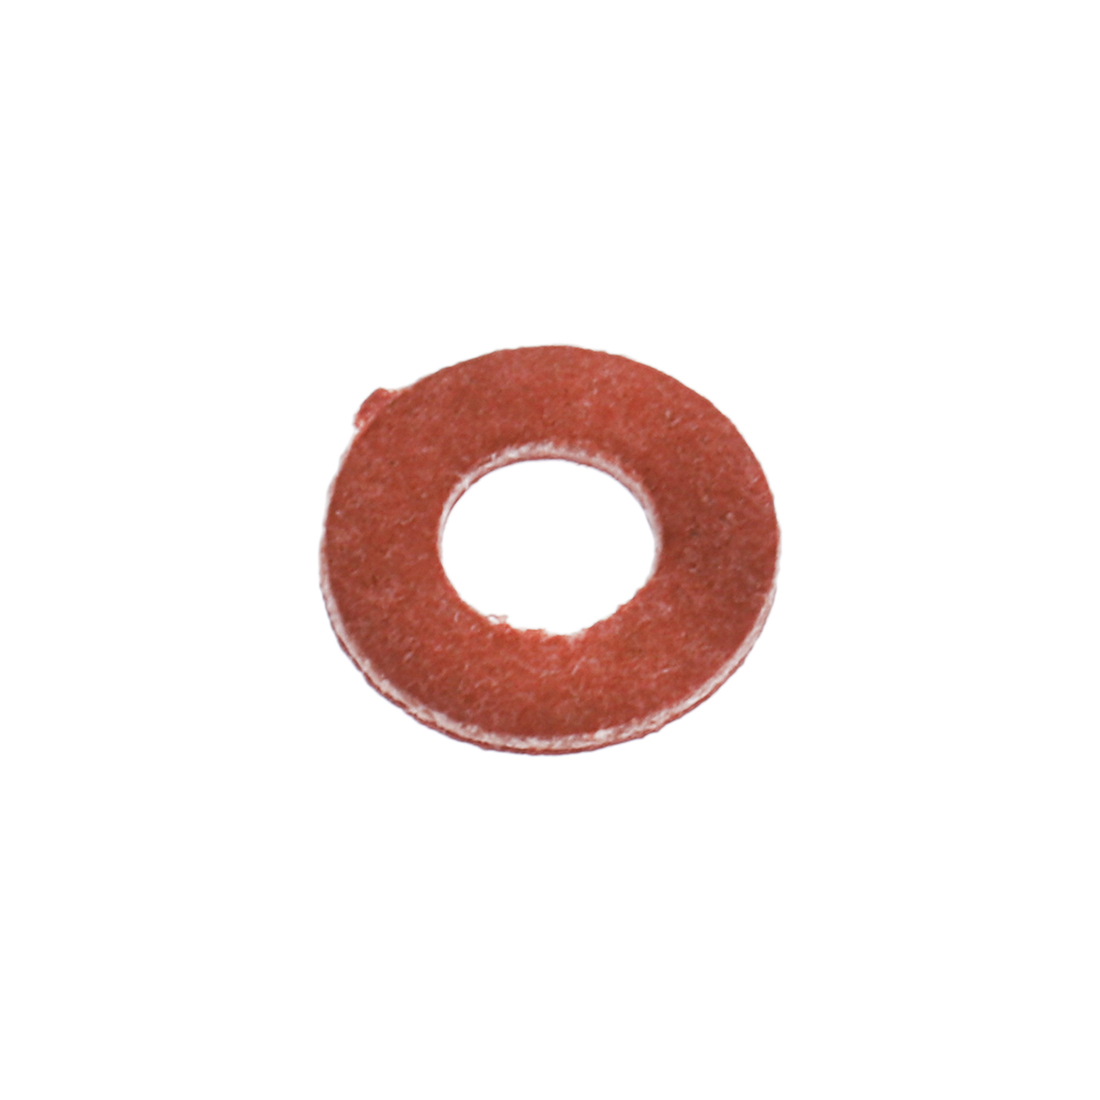 M2.5 Plain Vulcanised Fibre Tap Washer, 0.5mm Thickness - 250 Pack